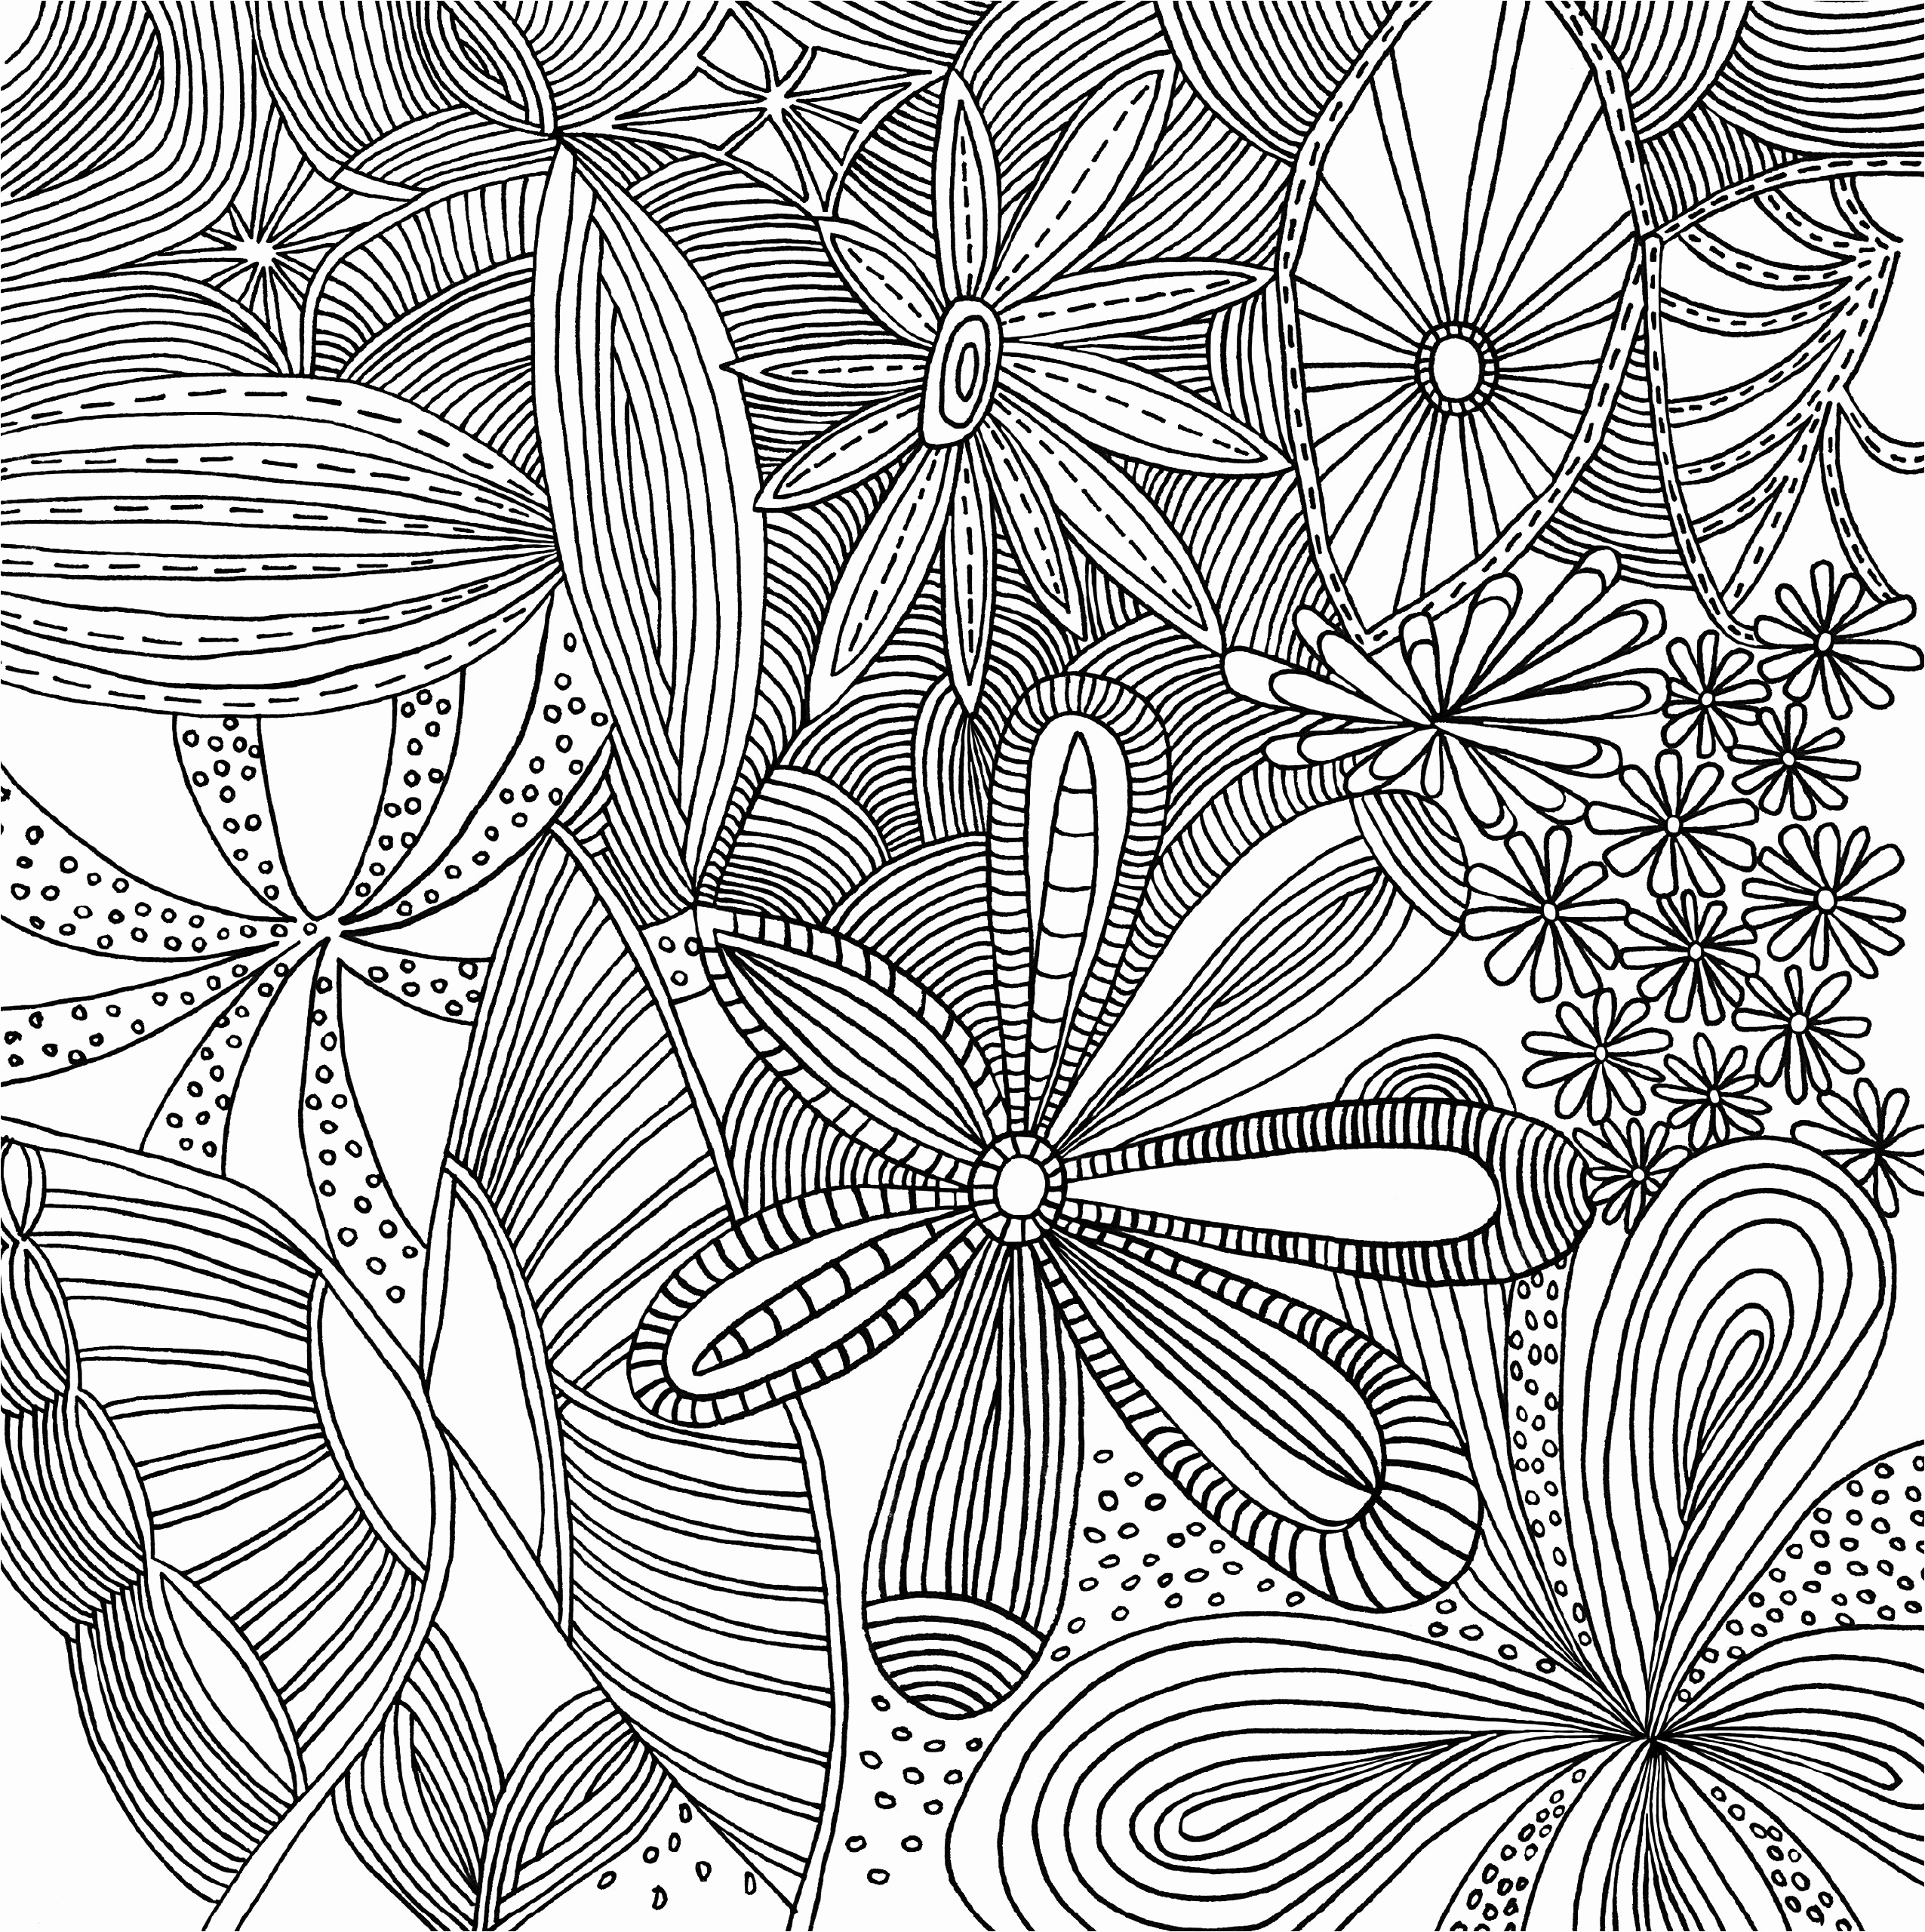 Otter Coloring Pages  Download 9d - Free For kids